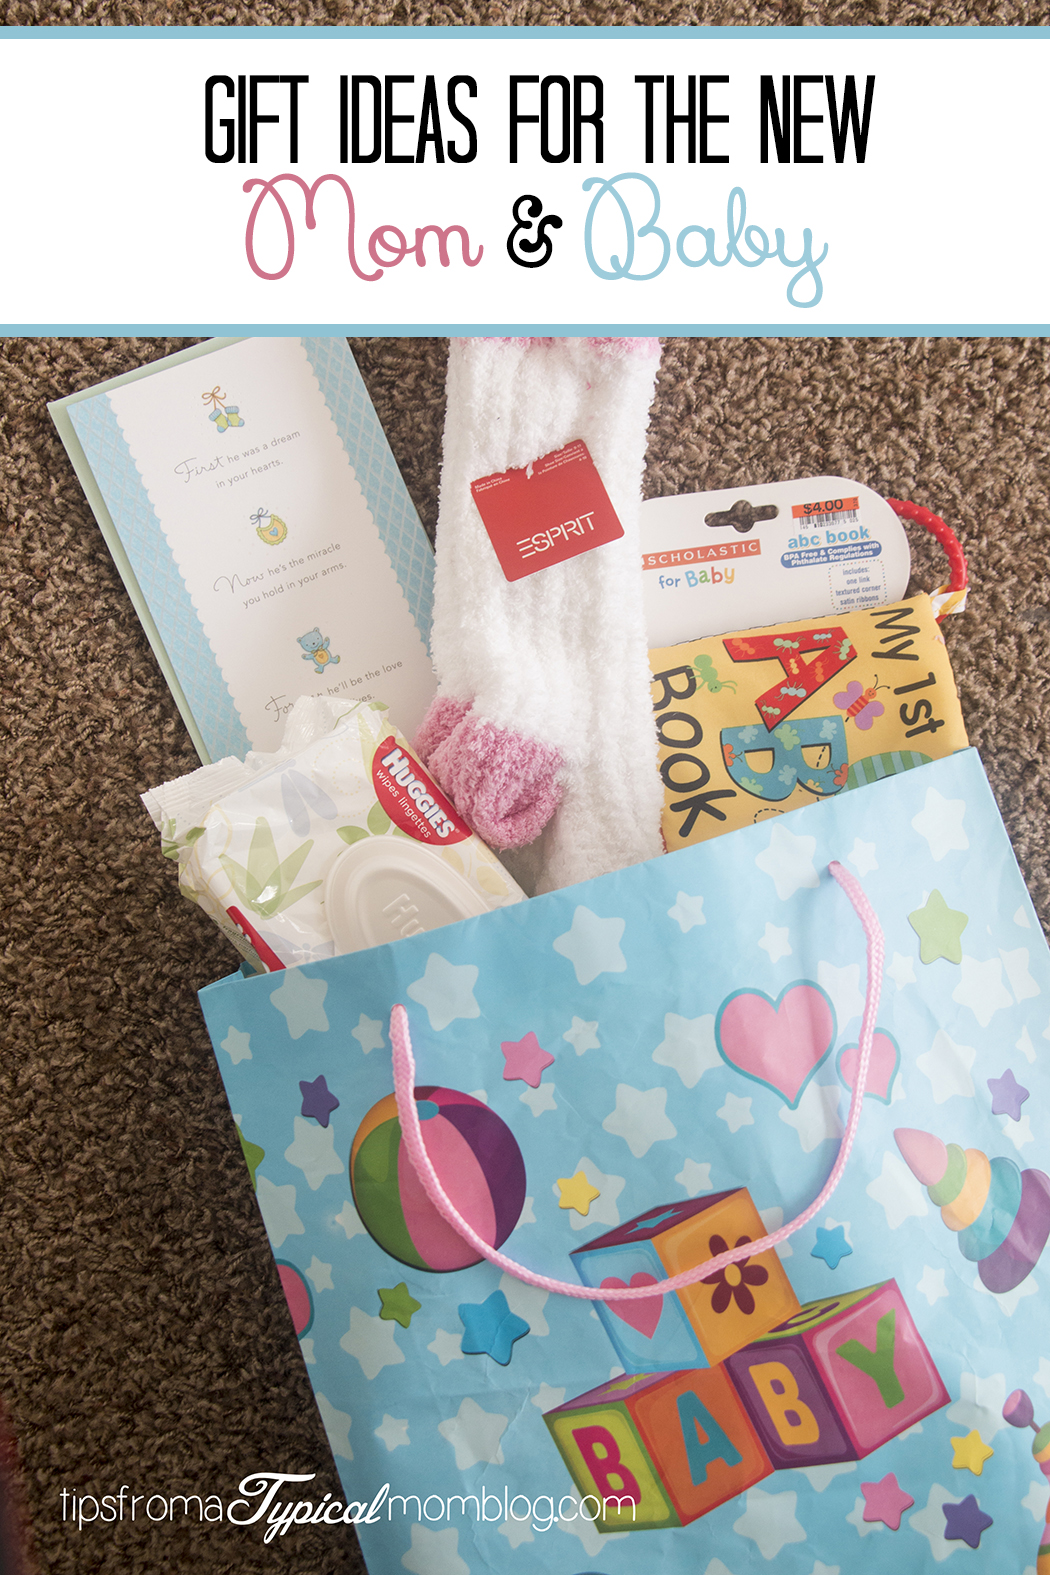 Babys First Christmas Gift Ideas Pinterest : Gift ideas for the new mom and baby tips from a typical